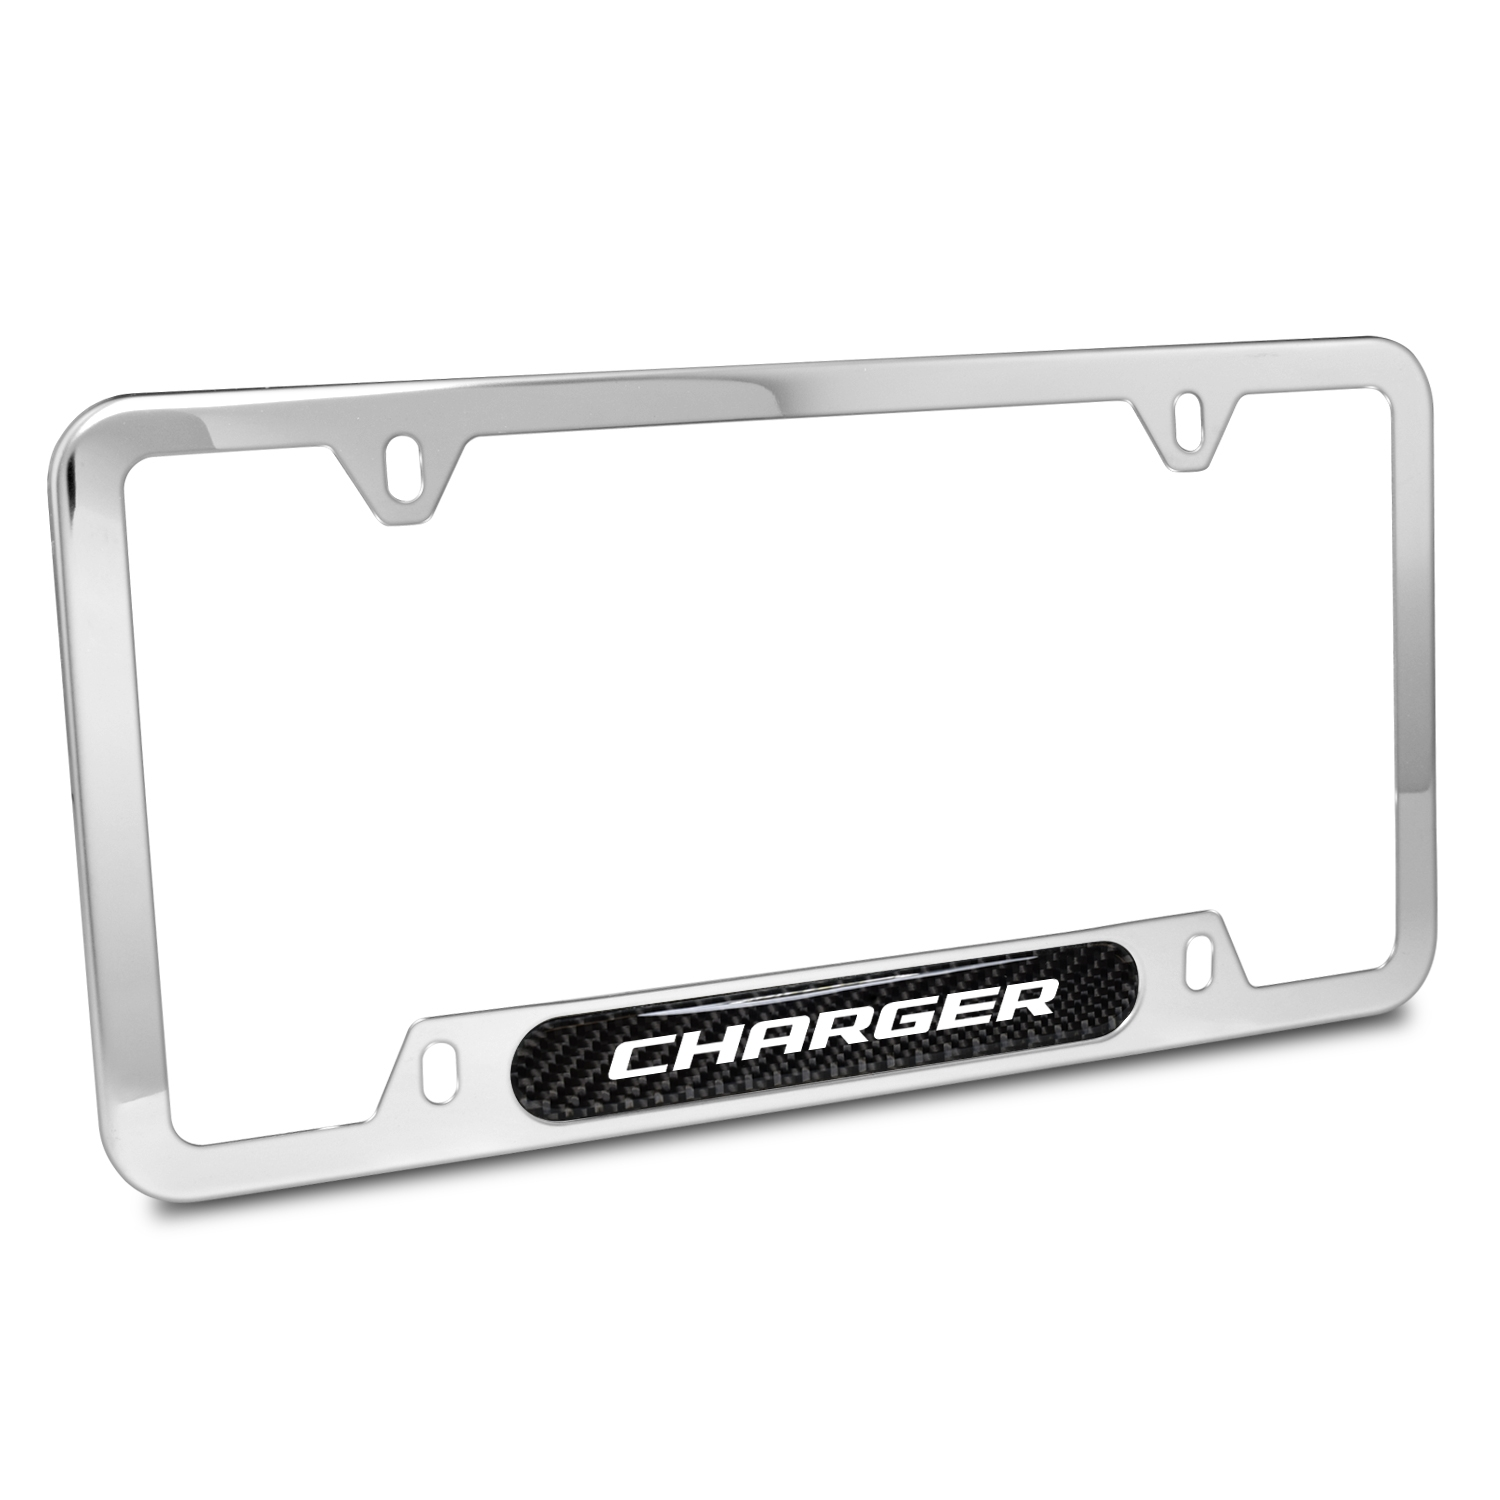 Dodge Charger Real Carbon Fiber Nameplate Chrome Stainless Steel License Plate Frame